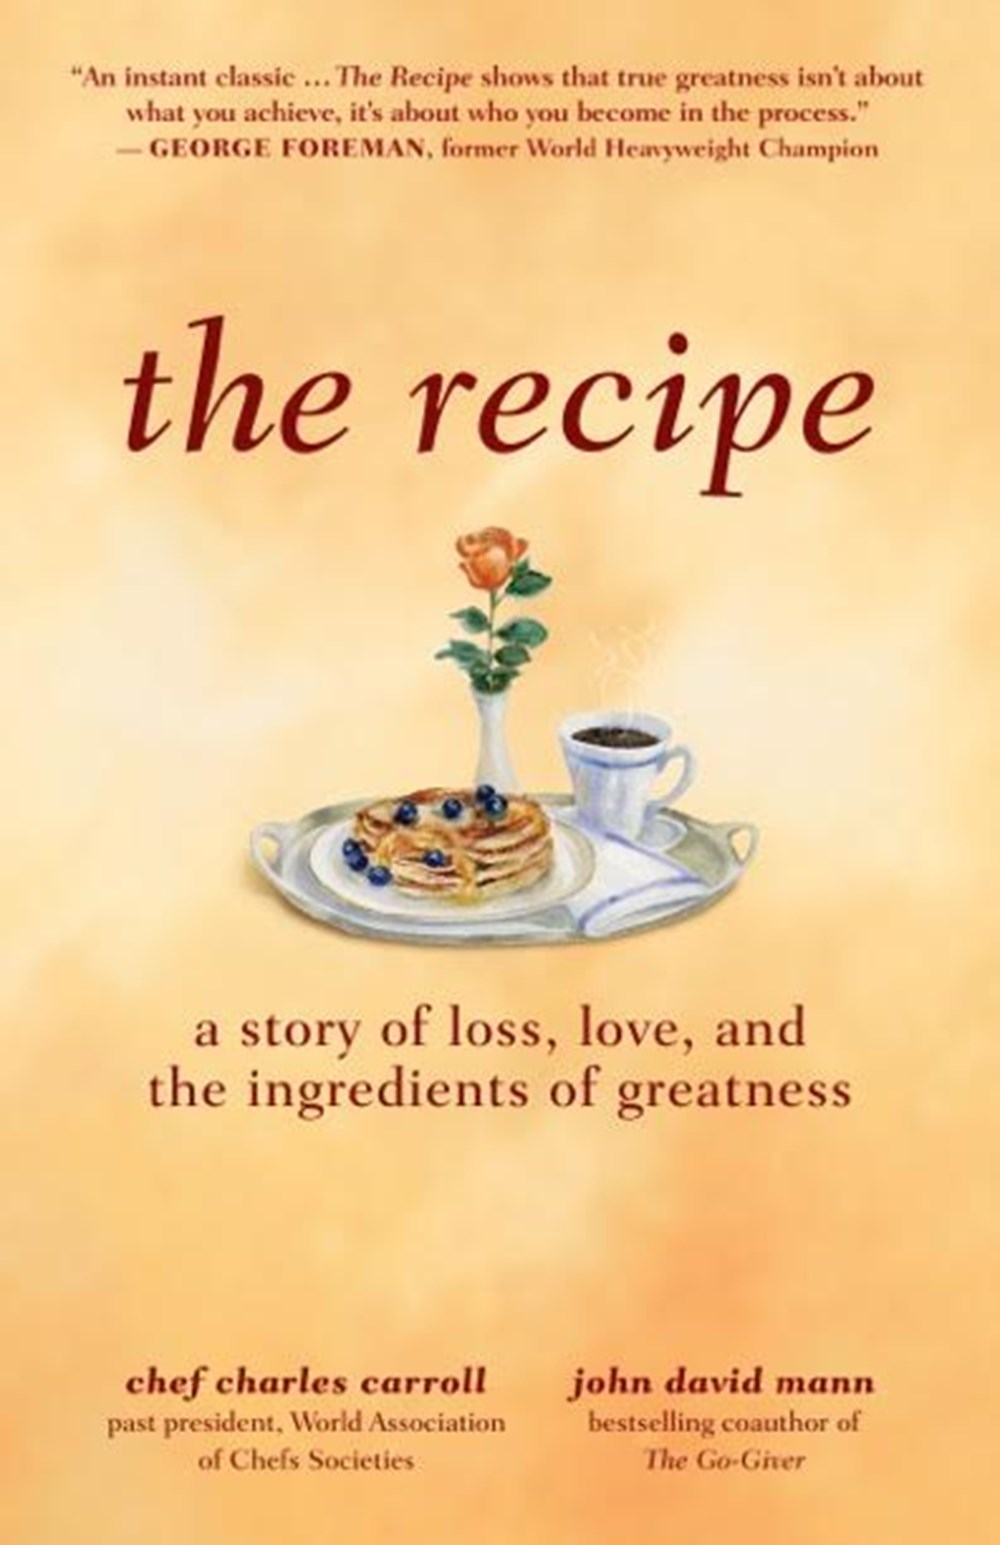 Recipe A Story of Loss, Love, and the Ingredients of Greatness